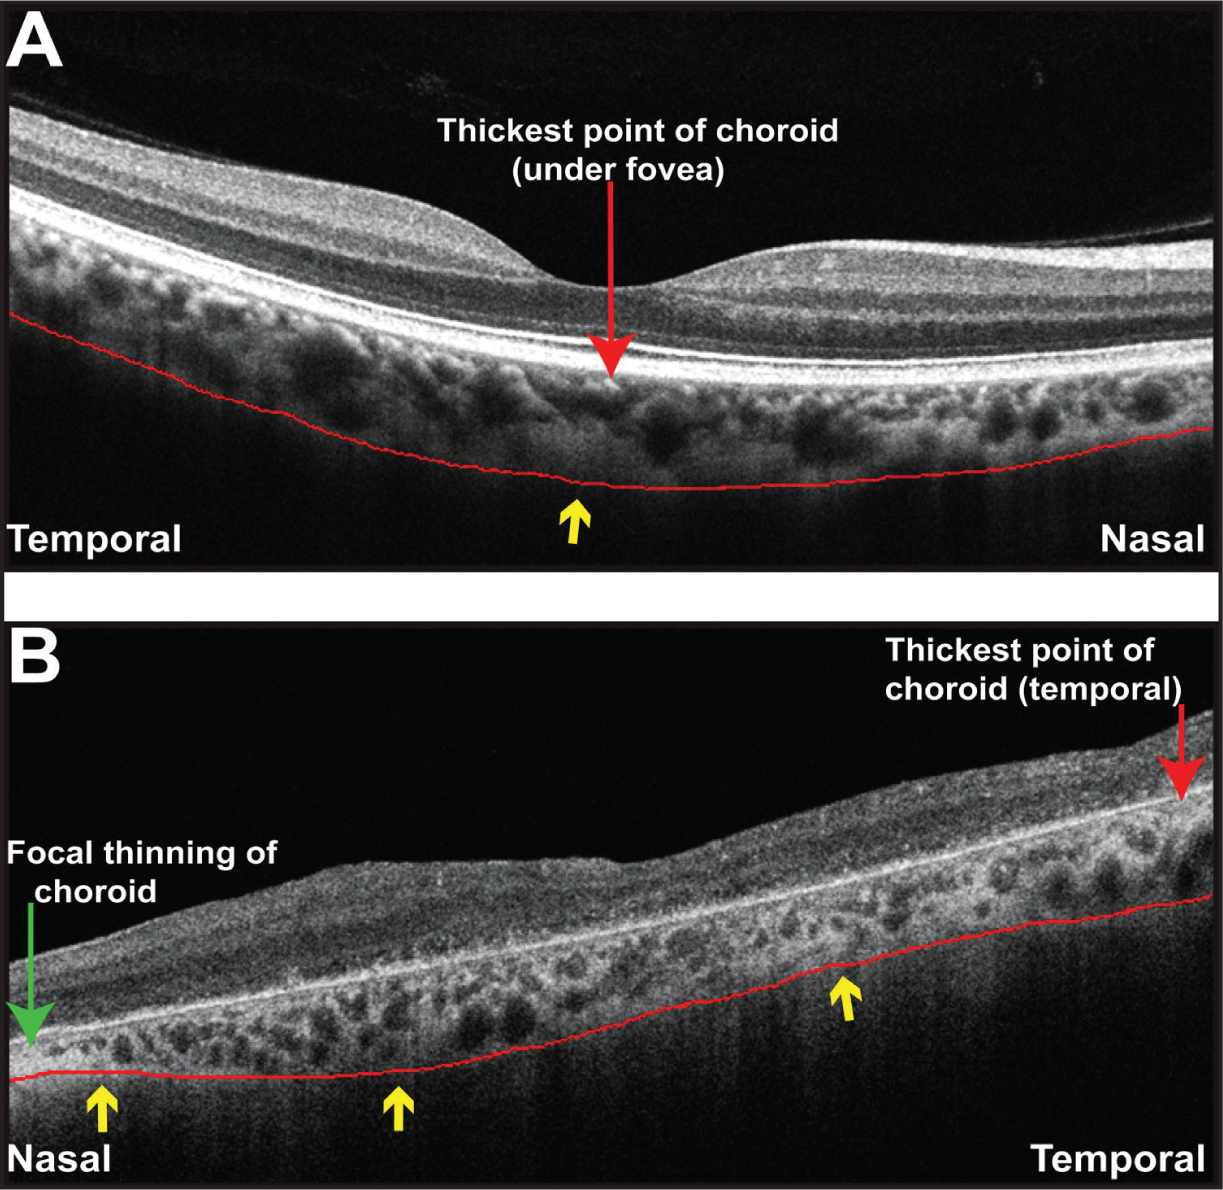 """Analysis of the choroidal morphology in healthy eyes and eyes with retinitis pigmentosa (RP). (A) Representative OCT image of a healthy eye. Note that the choroid is thinnest nasally, thickest beneath the fovea (red arrow) and thins out temporally. Red line represents the smooth, convex (or """"bowl"""") shape to the border of the choroid and sclera and yellow arrow represents one point of inflection. (B) Representative OCT image of an eye with RP. Note the exaggerated nasal thinning (green arrow) and an irregular or S shape to the border of the choroid and sclera (red line) with more than one inflection point (yellow arrows). The thickest point of the choroid is not under the fovea and is temporally located (red arrow)."""